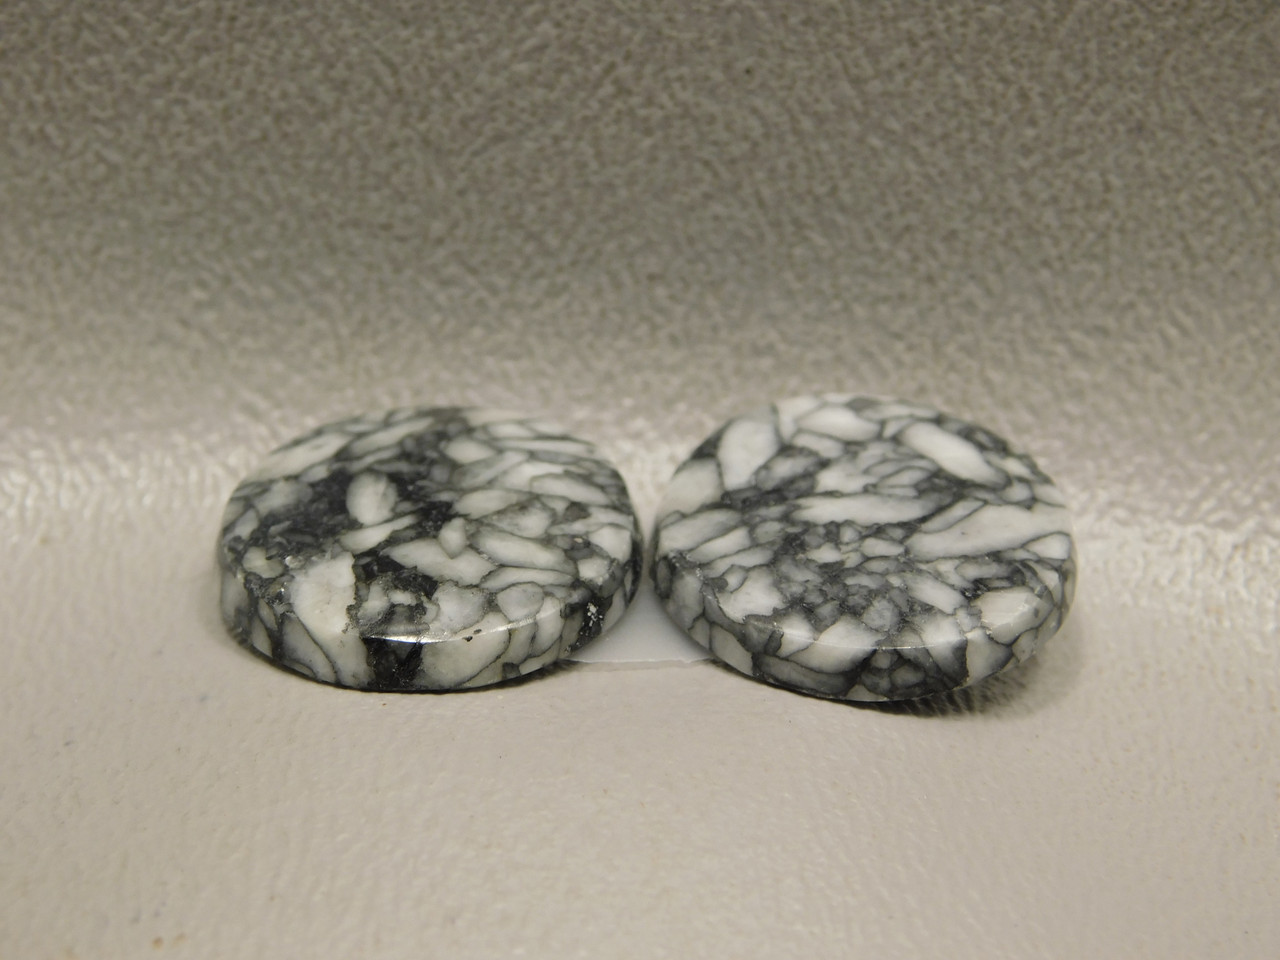 Pinolith or Pinolite Cabochons Matched Pair 18.5 mm Round Stones #21